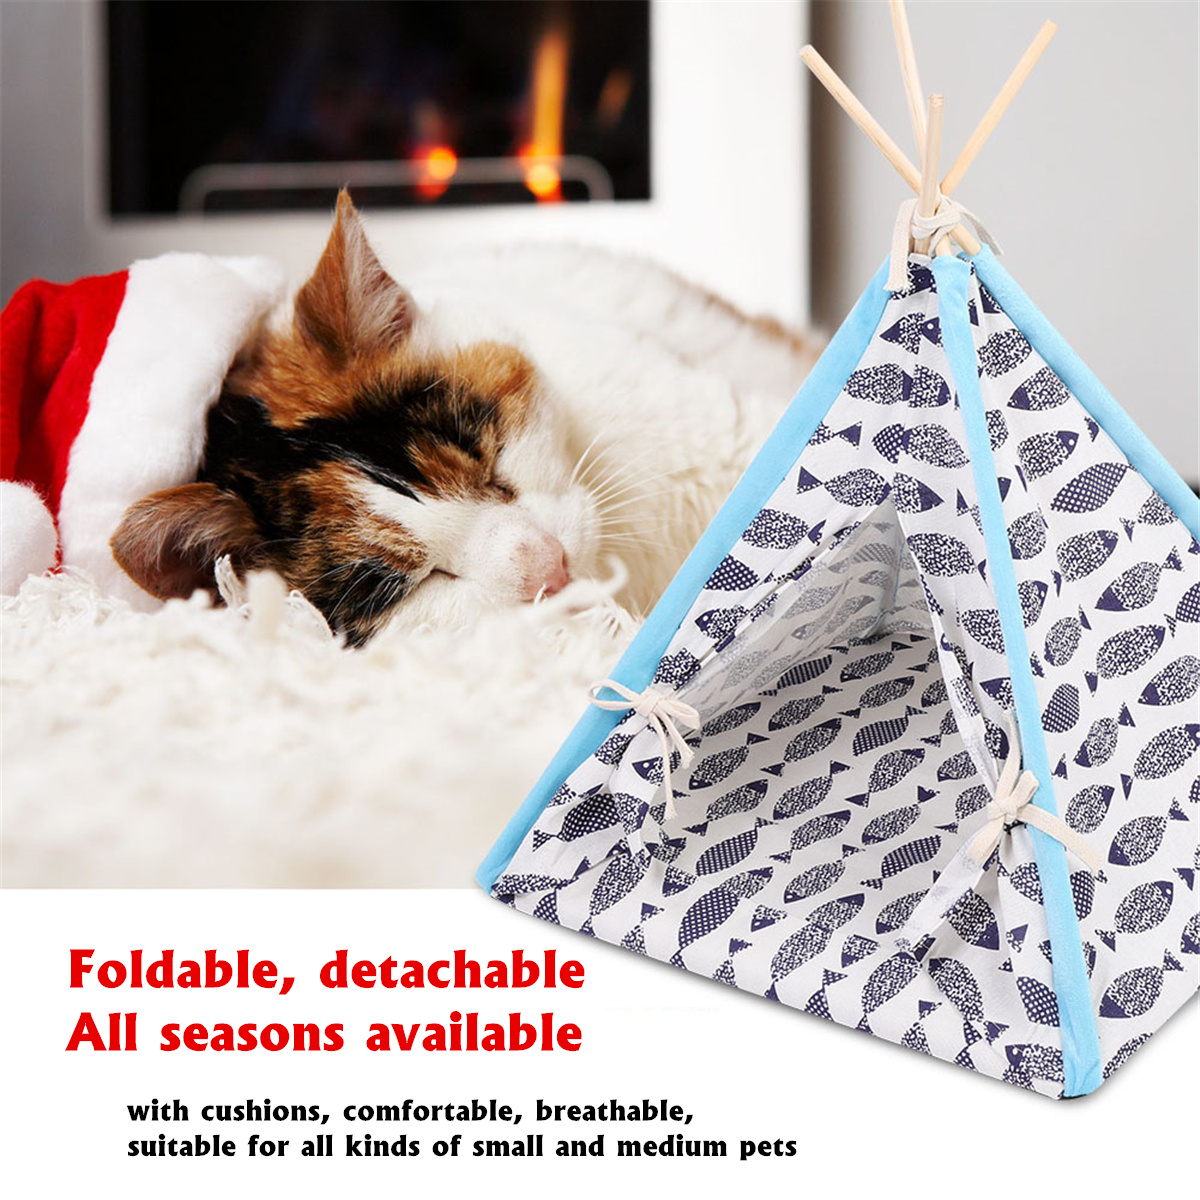 Foldable Linen Pet Dog House Kennels Washable Tent Puppy Cat Indoor Outdoor Portable Teepee Mat Dog Supplies 3 Styles 45X45X60cmFoldable Linen Pet Dog House Kennels Washable Tent Puppy Cat Indoor Outdoor Portable Teepee Mat Dog Supplies 3 Styles 45X45X60cm